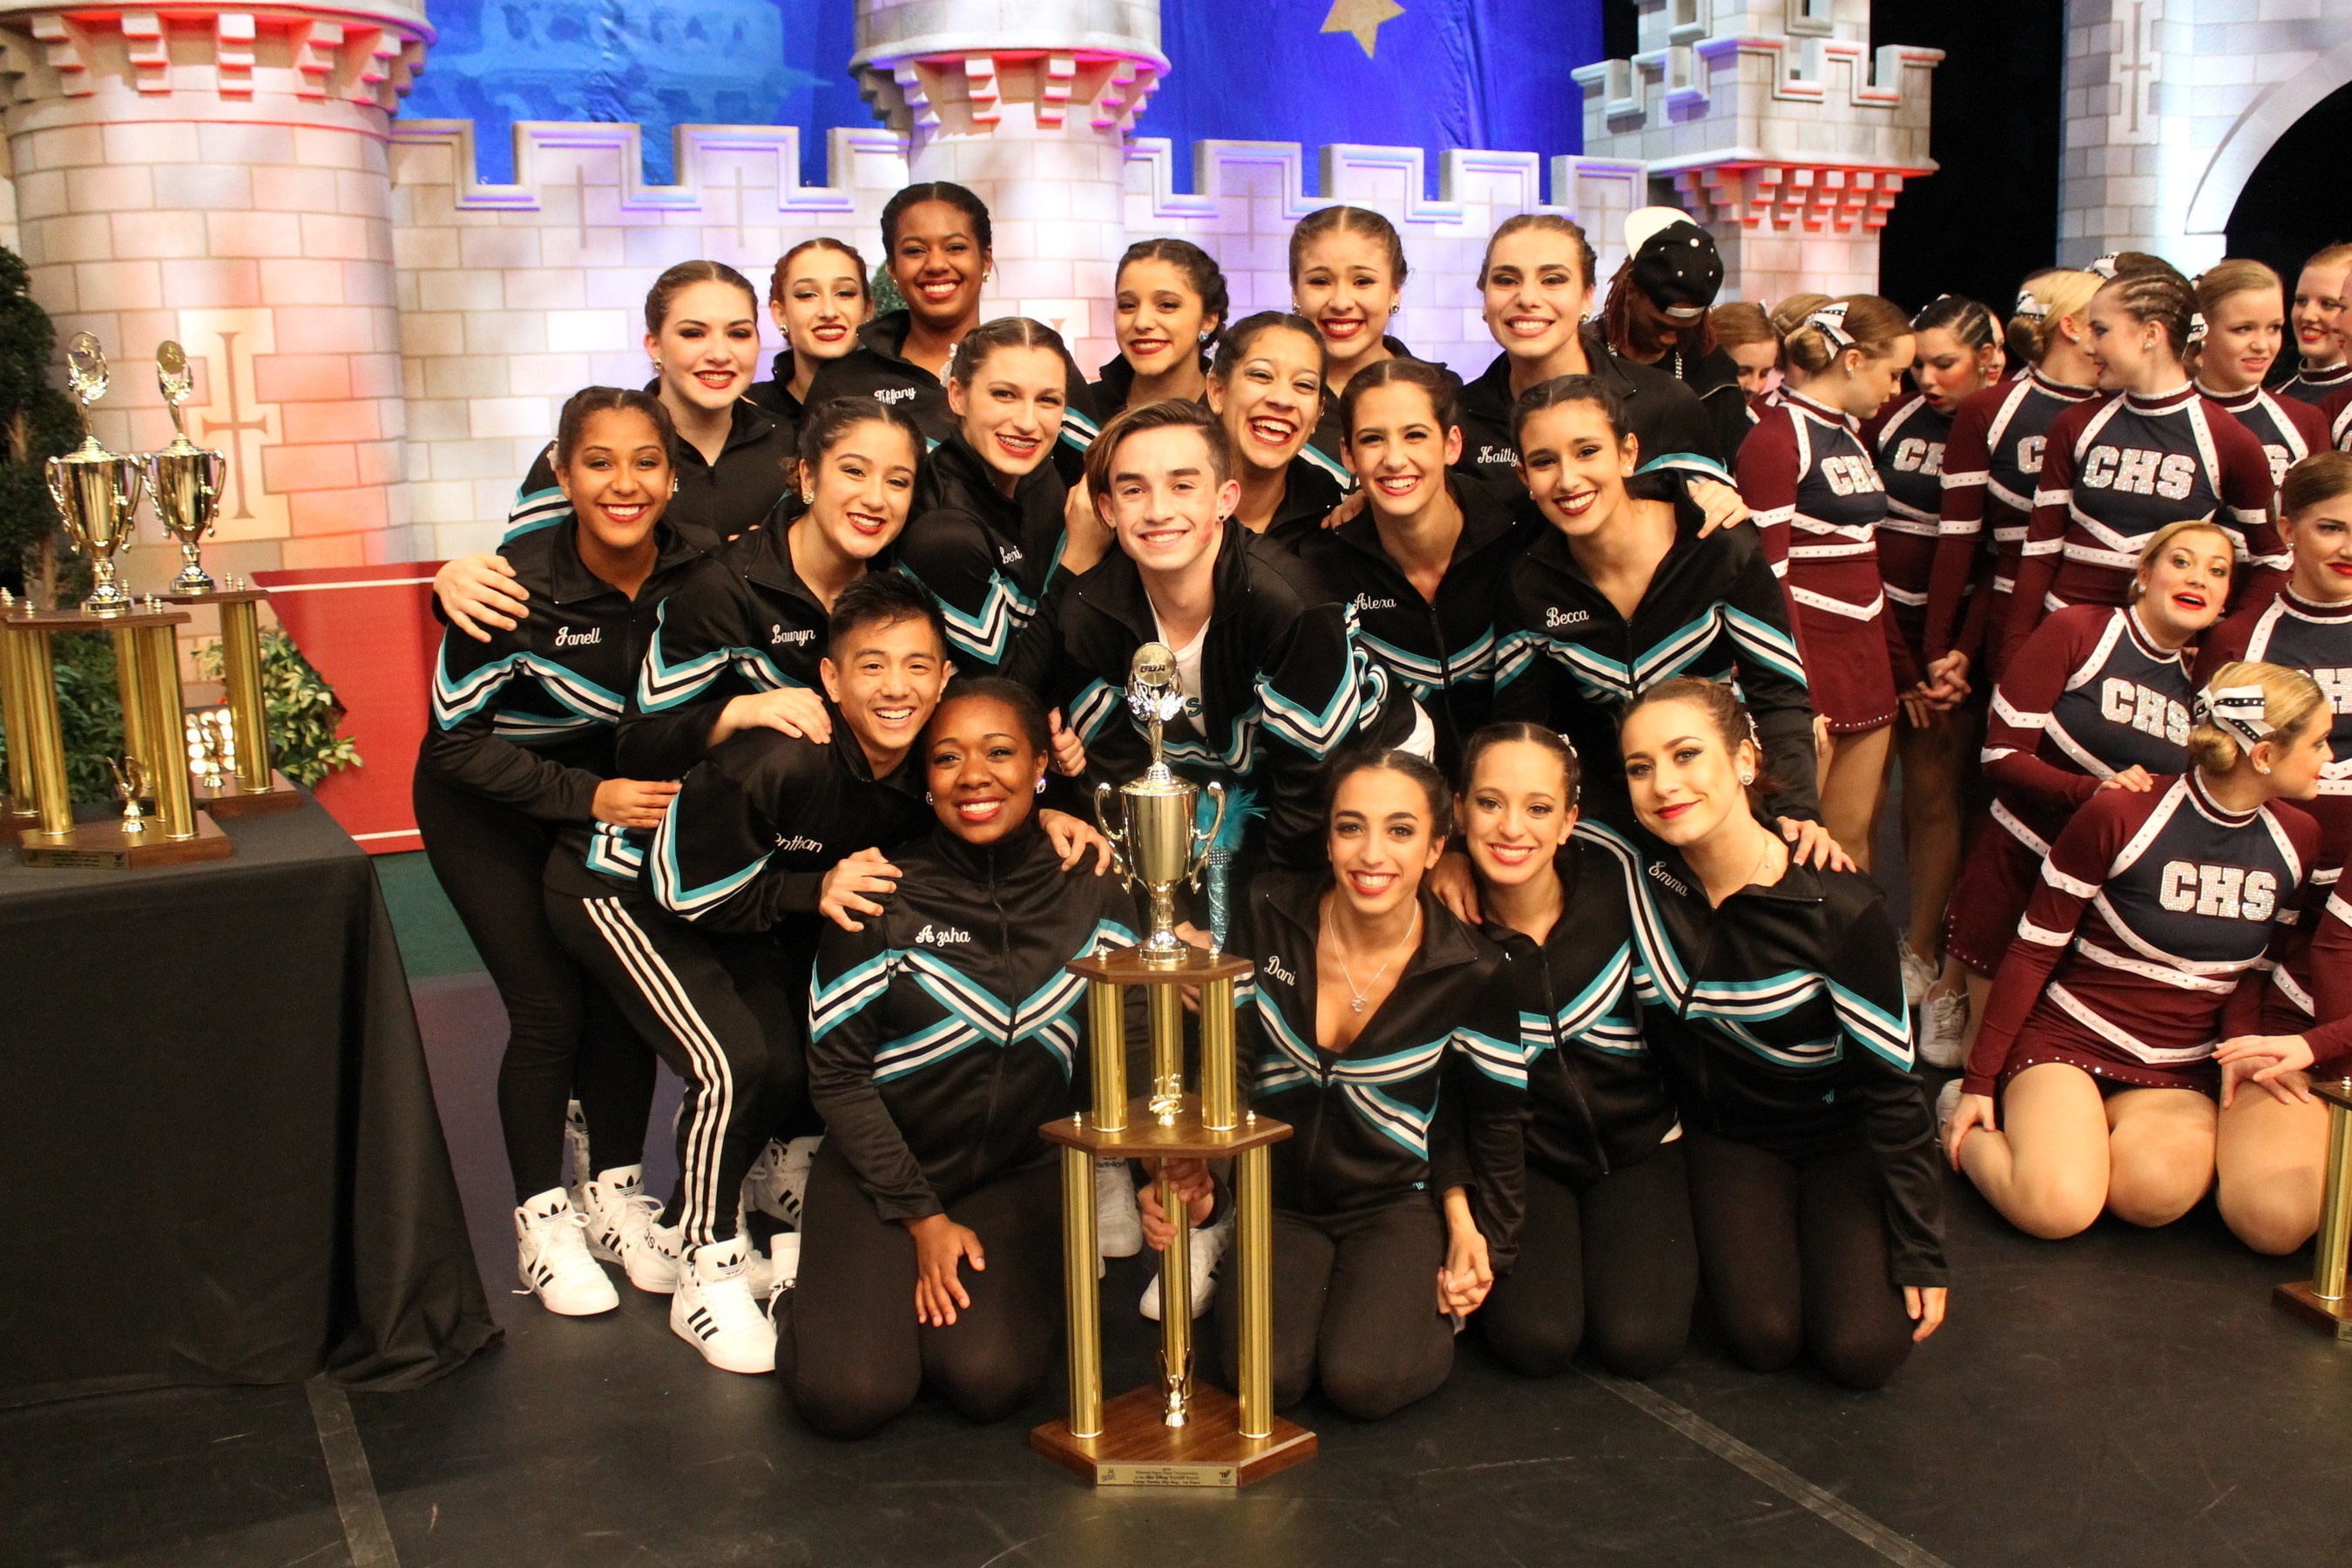 Coral Reef High Wins Hip Hop and Jazz Titles at 2016 National High School Cheerleading and Dance Team Championships